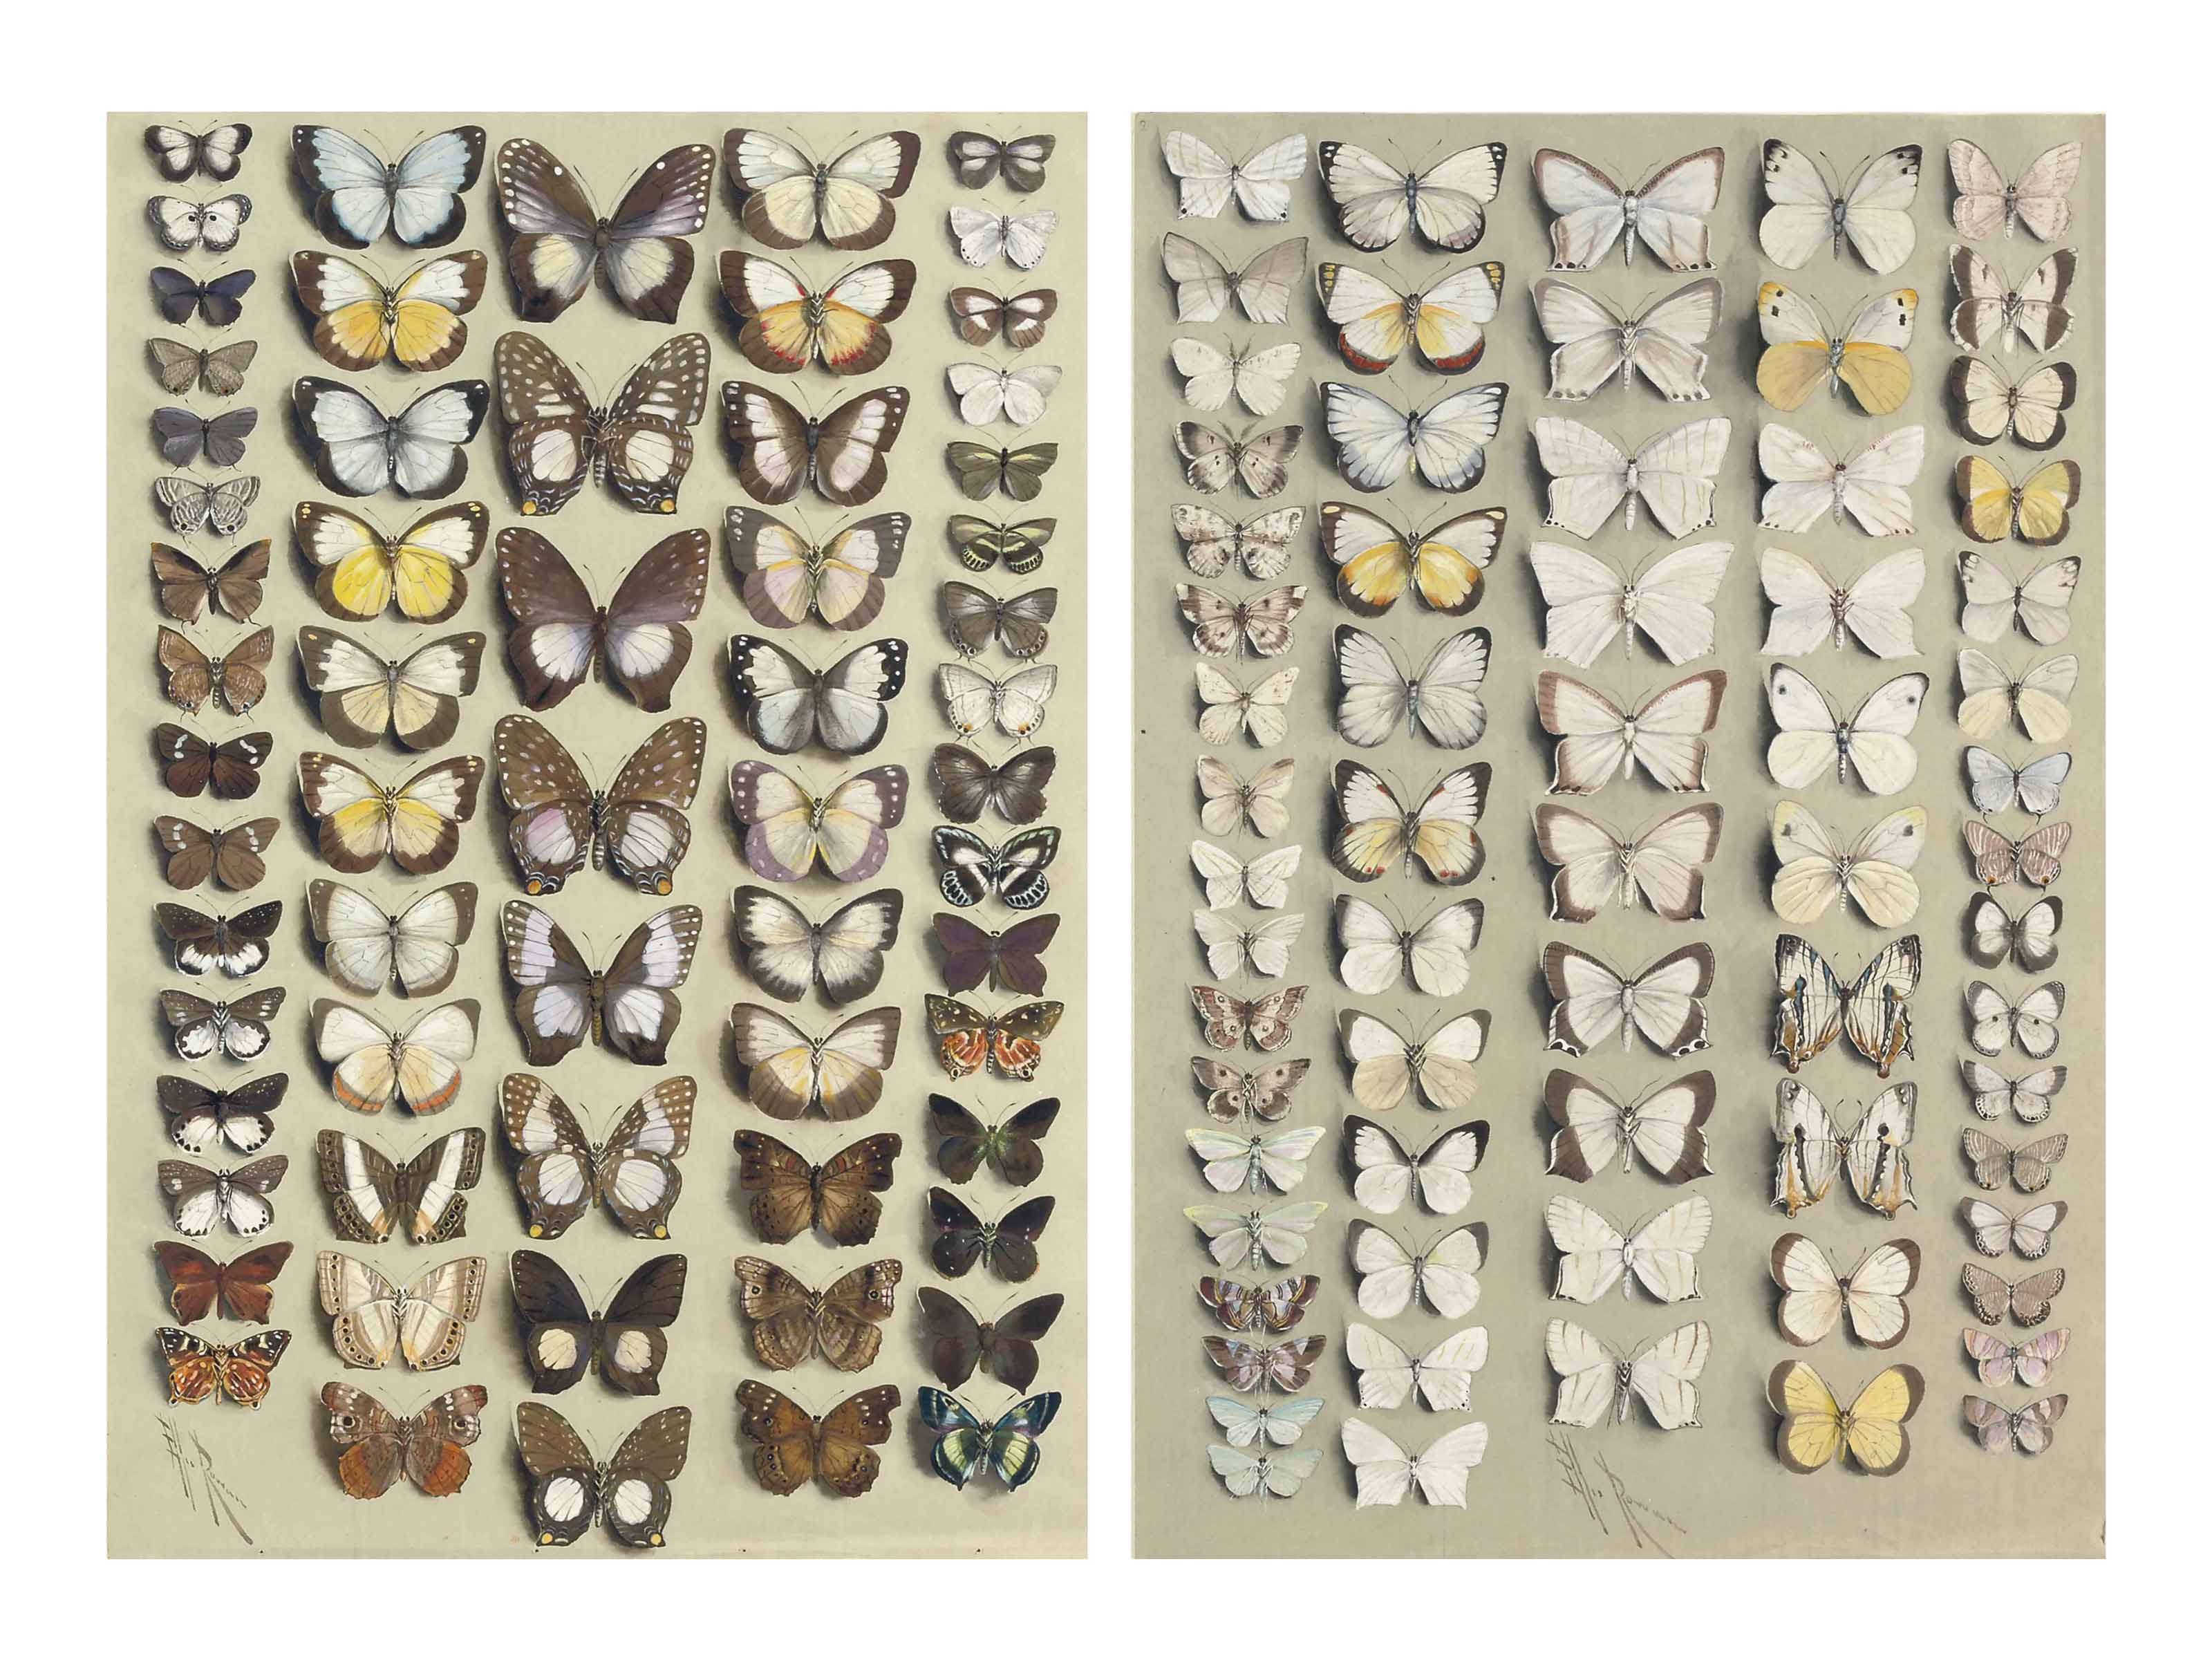 White butterflies: sixty-two butterflies, in five columns, representing five families: PIERIDAE (Appias 17-22, 36-43; Delias 23,24), LYCAENIDAE (47-50; Pithecops dionisius 1,2; Prosotas 3,4; Nacaduba 5-8; Danis 51,52; Danis perpheres 55,56; Hypolycaena phorbas 53,54); RIODINIDAE (Dicallaneura 15,16, 57,58), HESPERIIDAE (9-14; Allora doleschalli 59,60; Hasora 61,62), NYMPHALIDAE subfamily NYMPHALINAE (Precis 27; Precis erigone 44-46), NYMPHALIDAE subfamily LIMENITINAE (Cyrestis acilia 25,26), and NYMPHALIDAE subfamily CHARAXINAE (Prothoe australis 28-35)  Sixty-six Lepidoptera, in five columns, including butterflies belonging to the PIERIDAE (19-28; 53-56; Appias albina 41,42, 45,46; Eurema candida 49,50), LYCAENIDAE (57-64) and NYMPHALIDAE subfamily LIMENITINAE (Cyrestis achates 47,48), together with many moths mostly belonging to the GEOMETRIDAE (e.g. 1,2; 9-12; 29-40; 43,44, 51,52) and PYRALIDAE (e.g. 15.16)